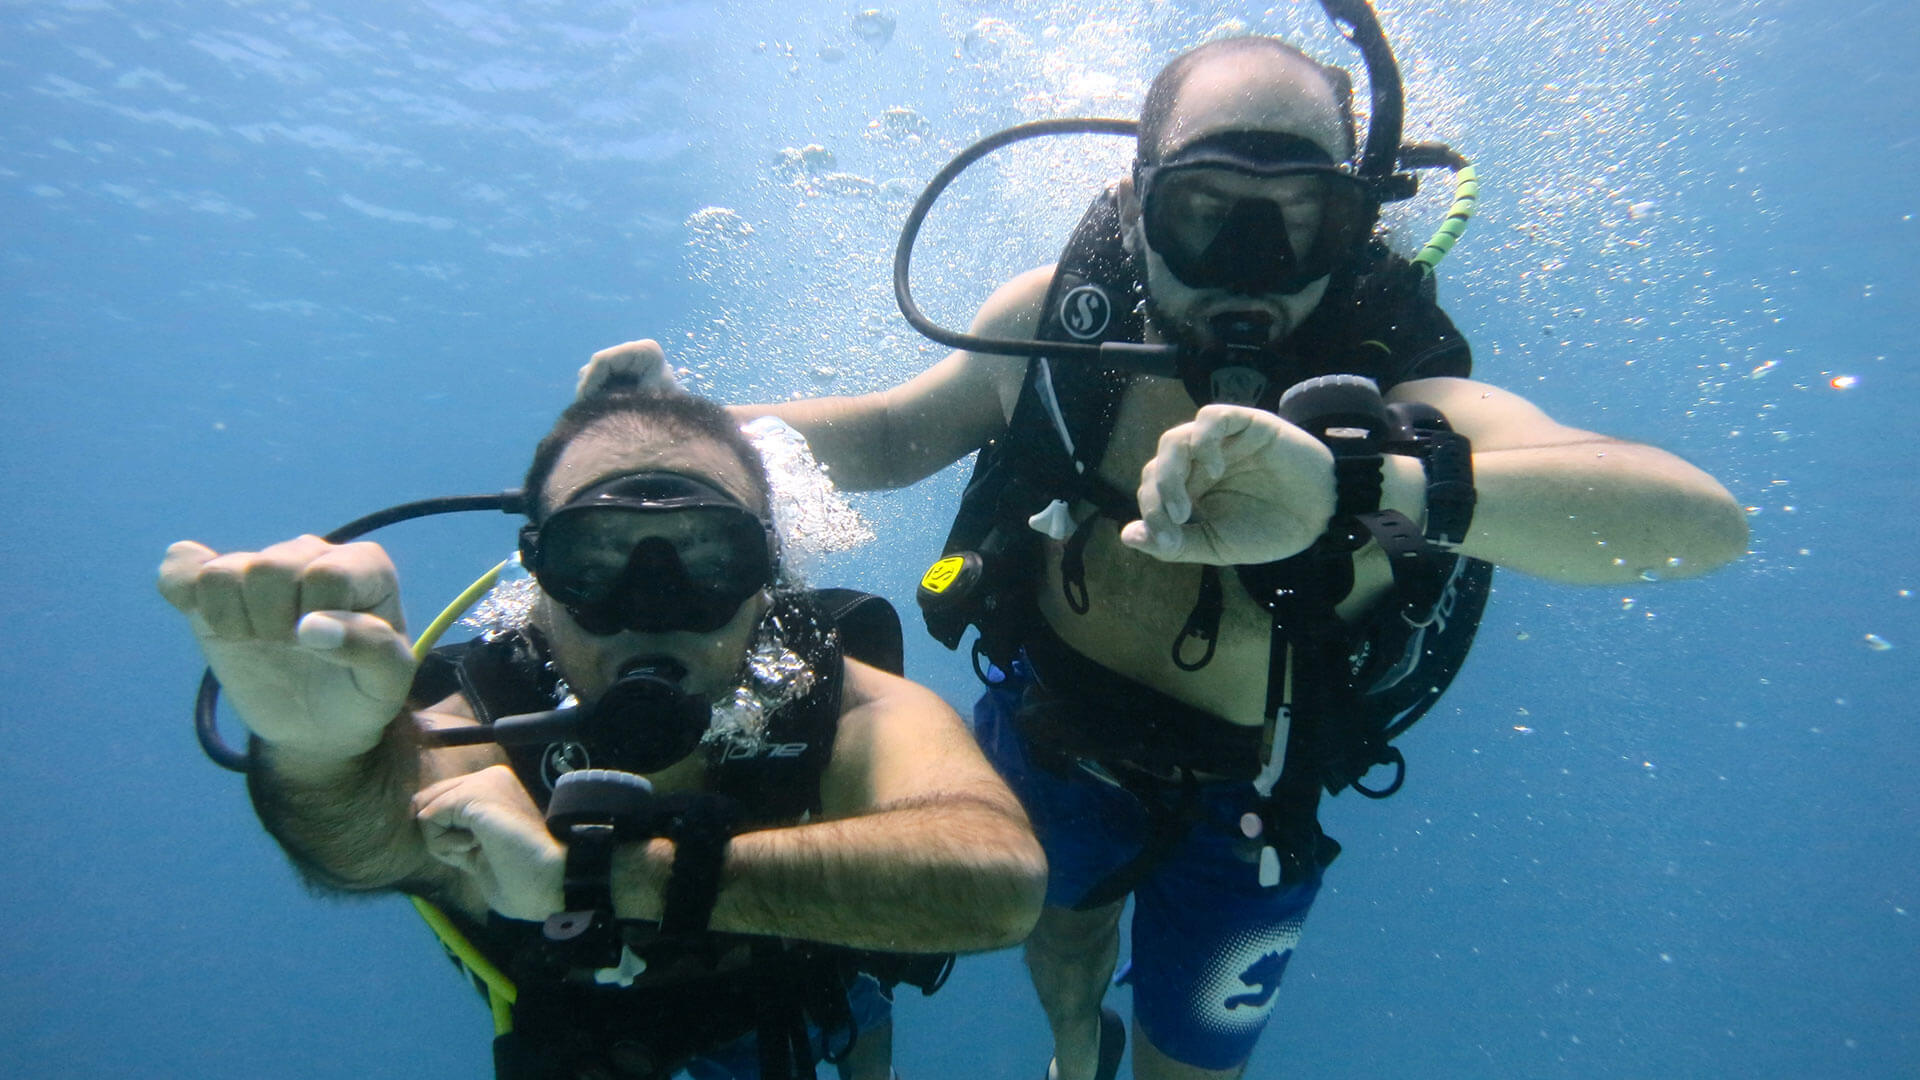 Common Mistakes Newly Certified Divers Make